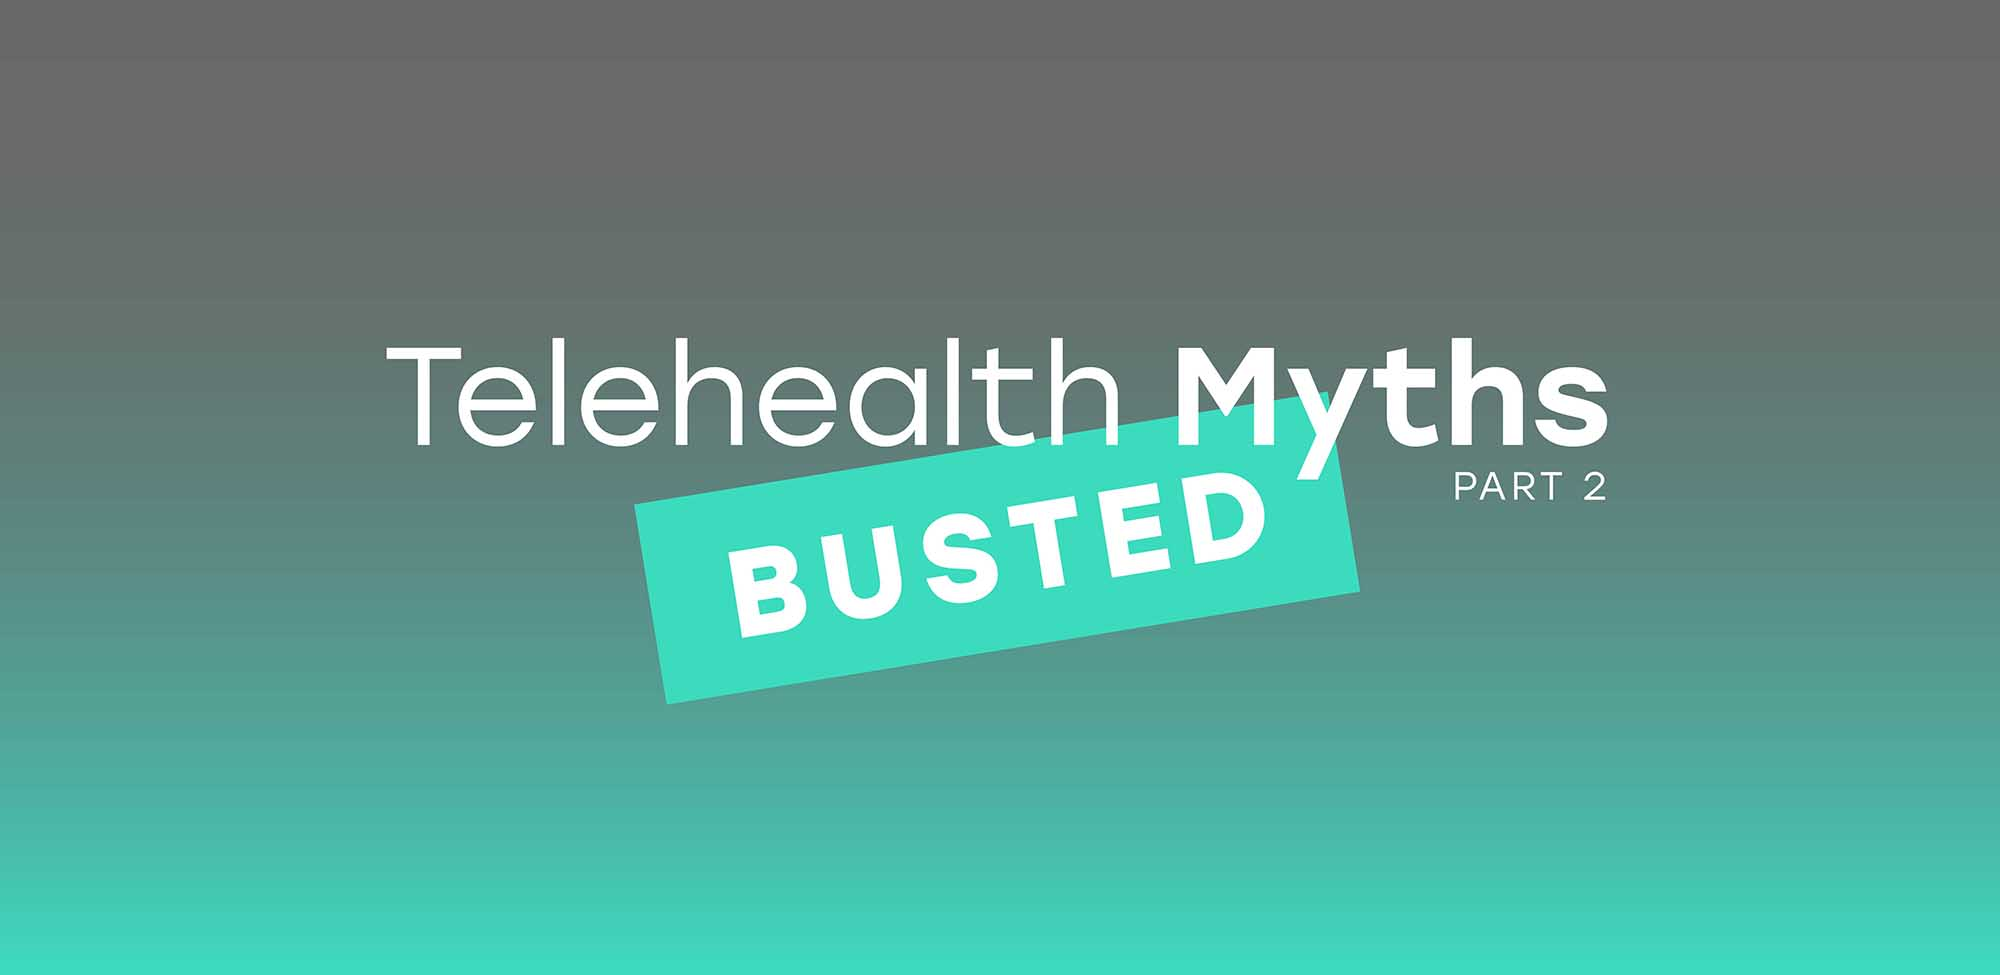 Telehealth Myths Busted: Part 2